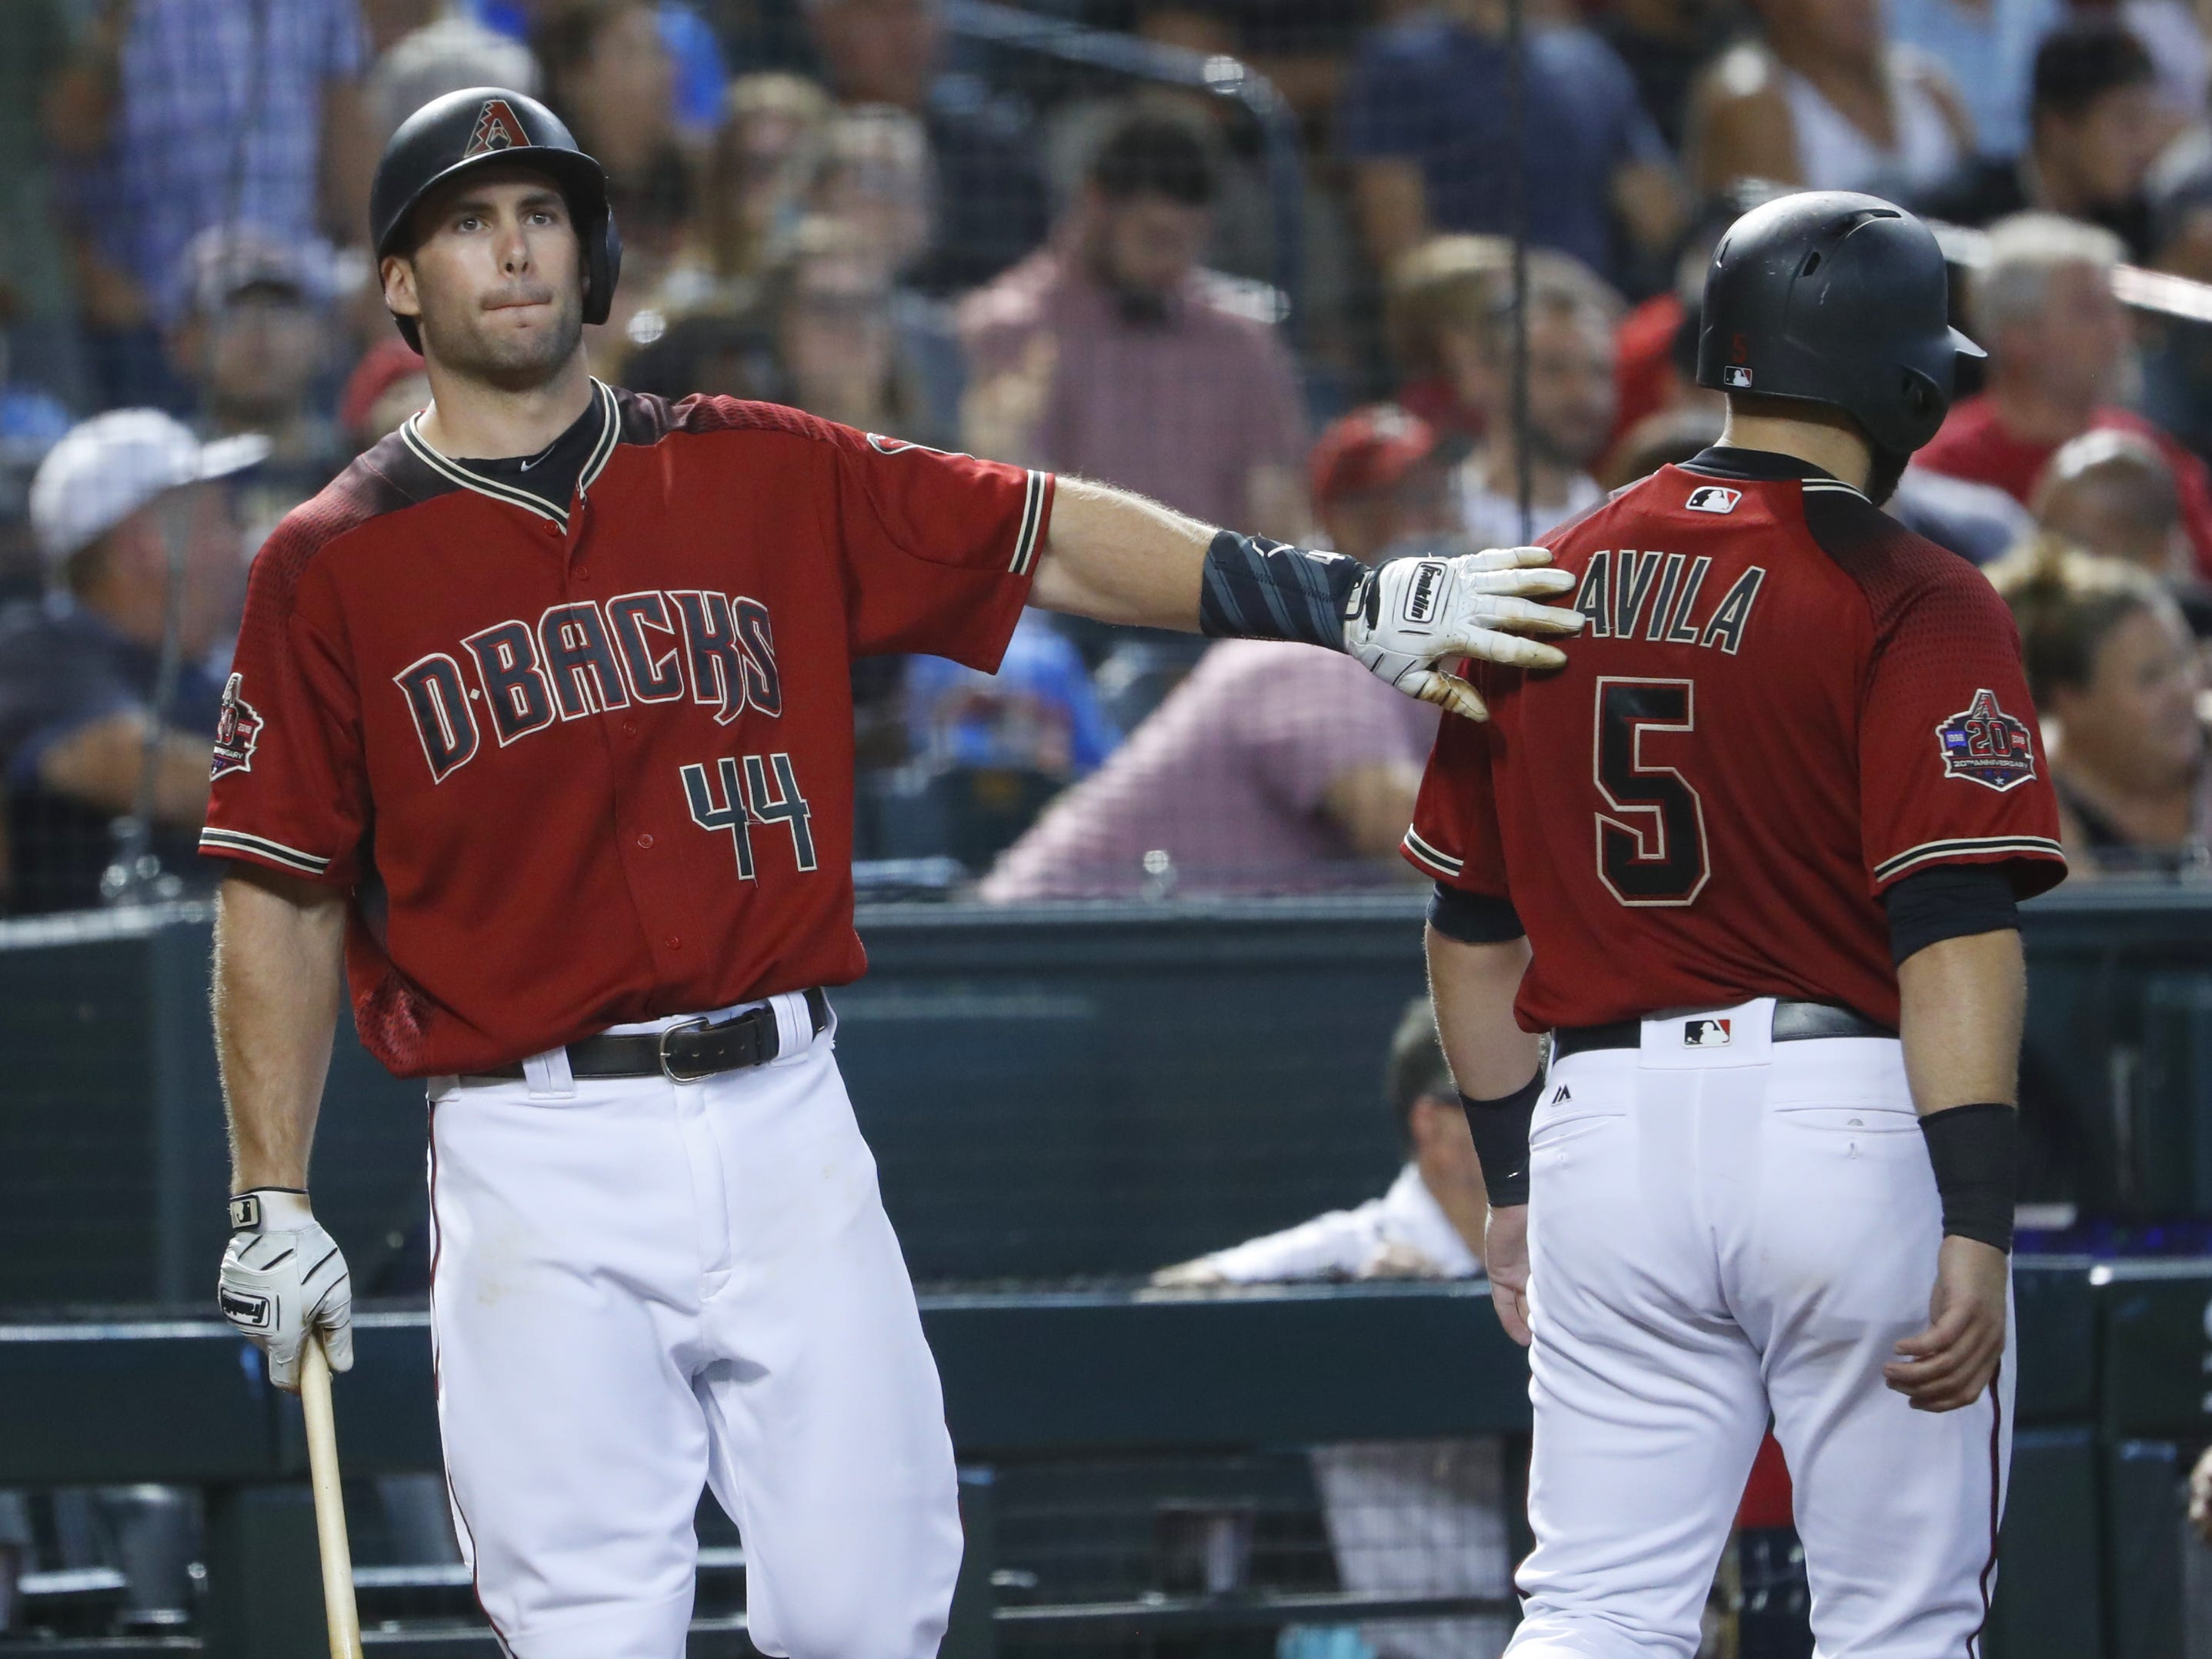 Diamondbacks Paul Goldschmidt (44) greets teammate Alex Avila (5) after Avila scored during the sixth inning against the Braves at Chase Field in Phoenix, Ariz. on Sept. 9, 2018.